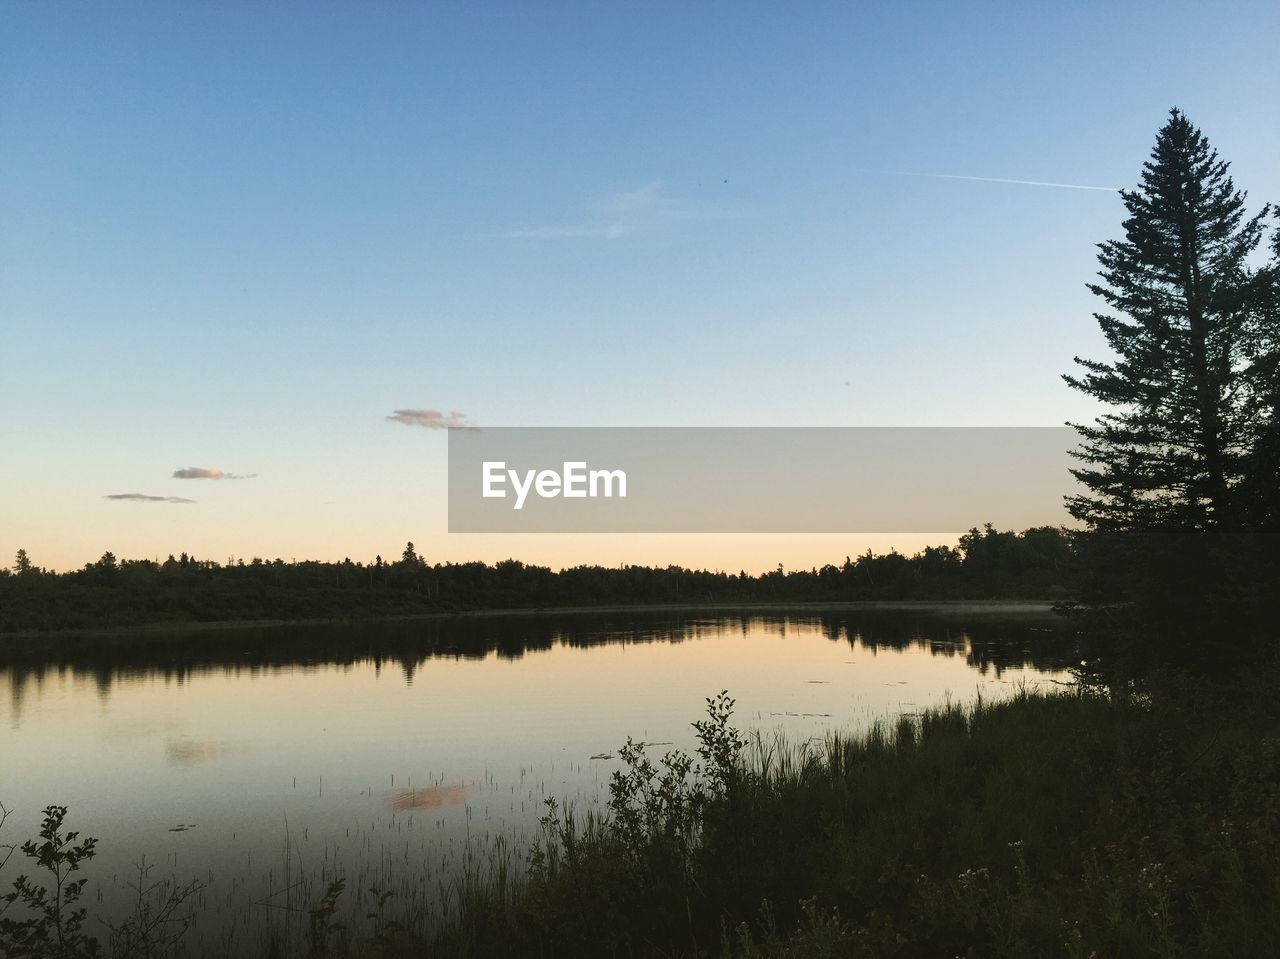 reflection, nature, lake, tree, water, sky, beauty in nature, tranquility, landscape, no people, scenics, outdoors, sunset